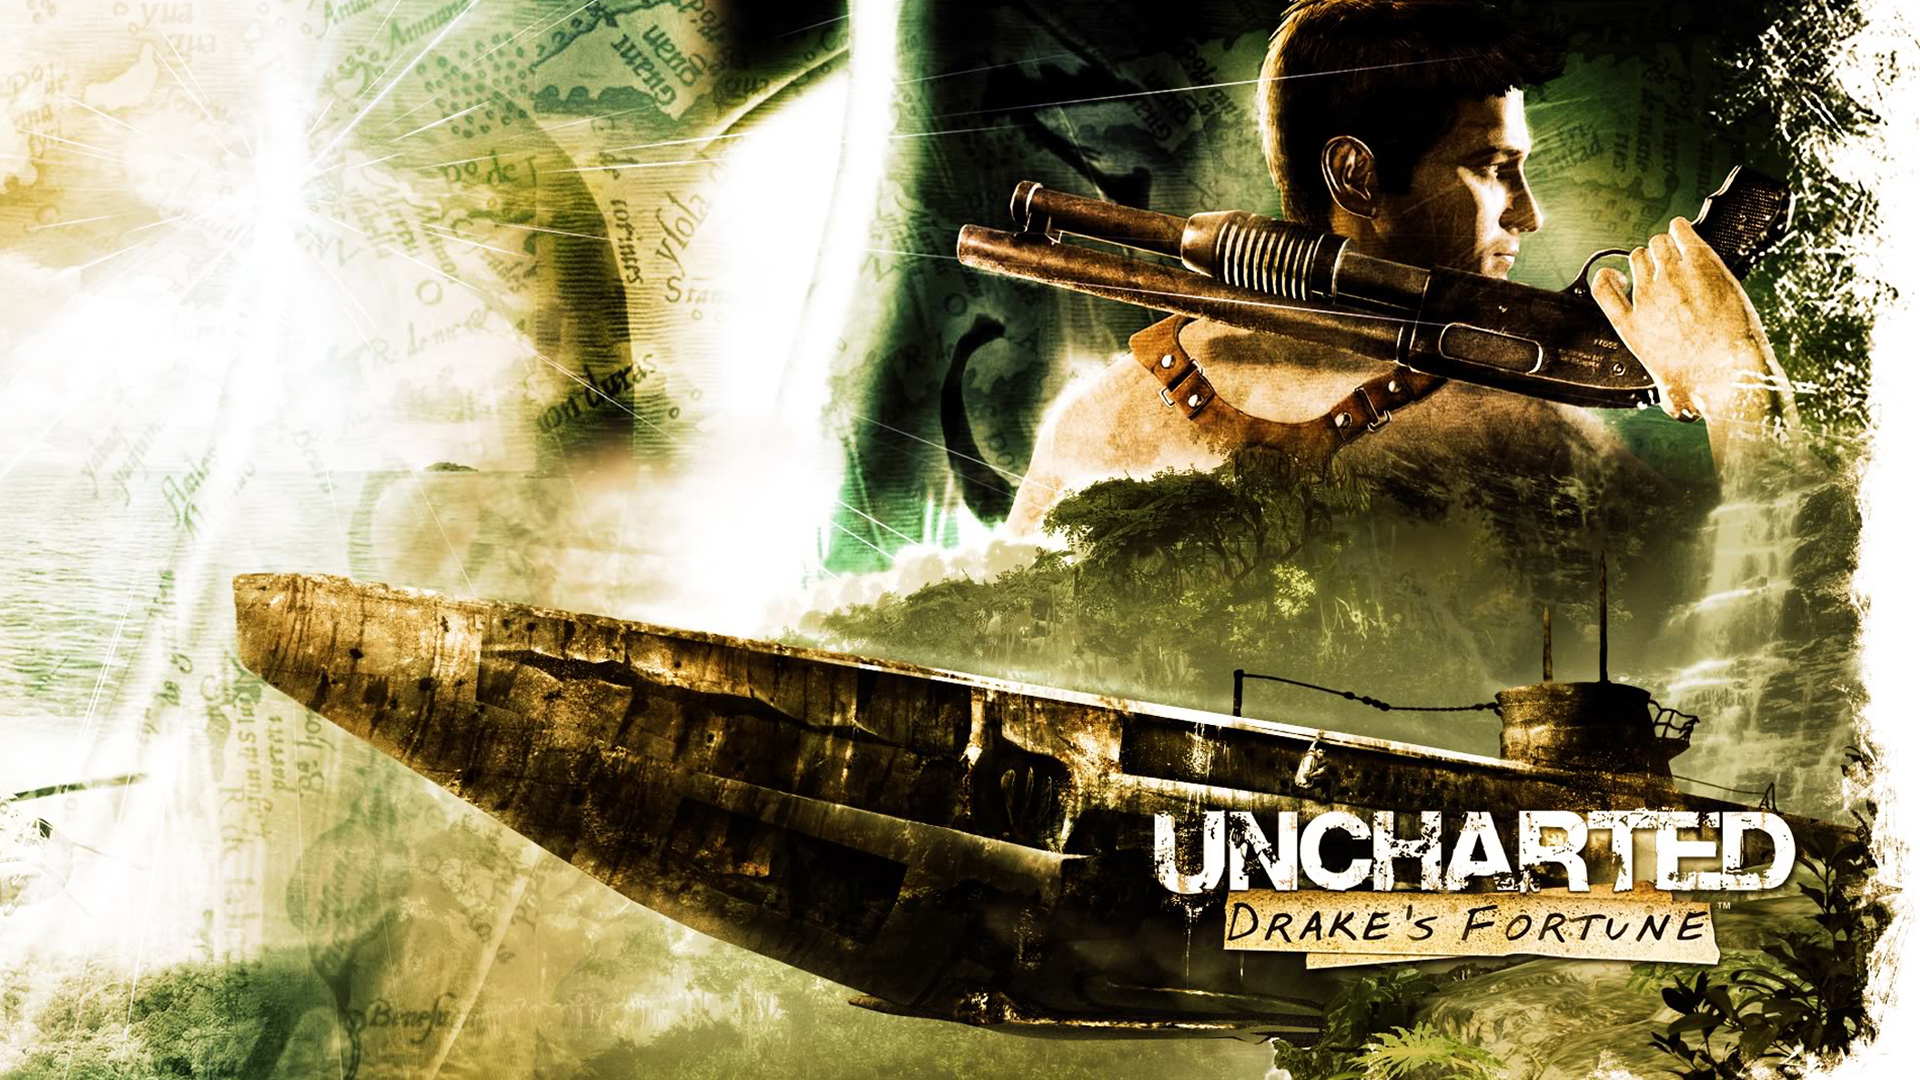 Free Uncharted: Drake's Fortune Wallpaper in 1920x1080